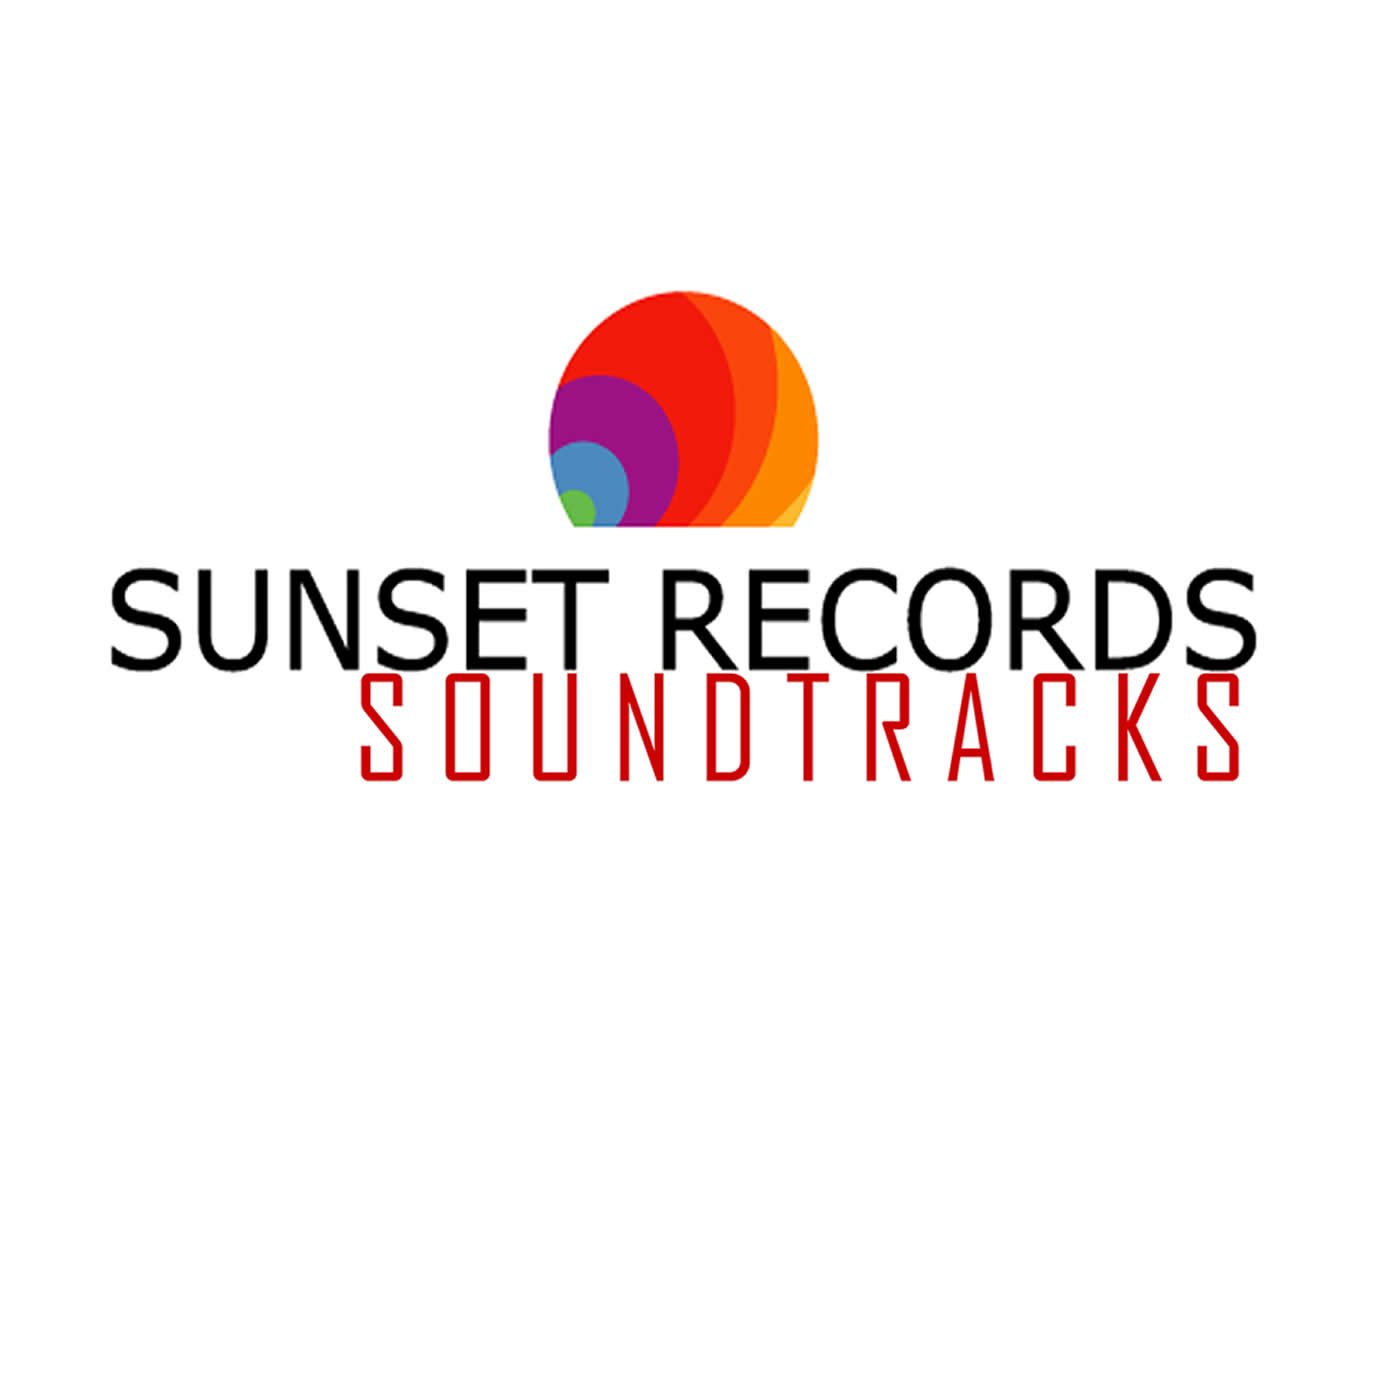 Sunset Records Soundtracks